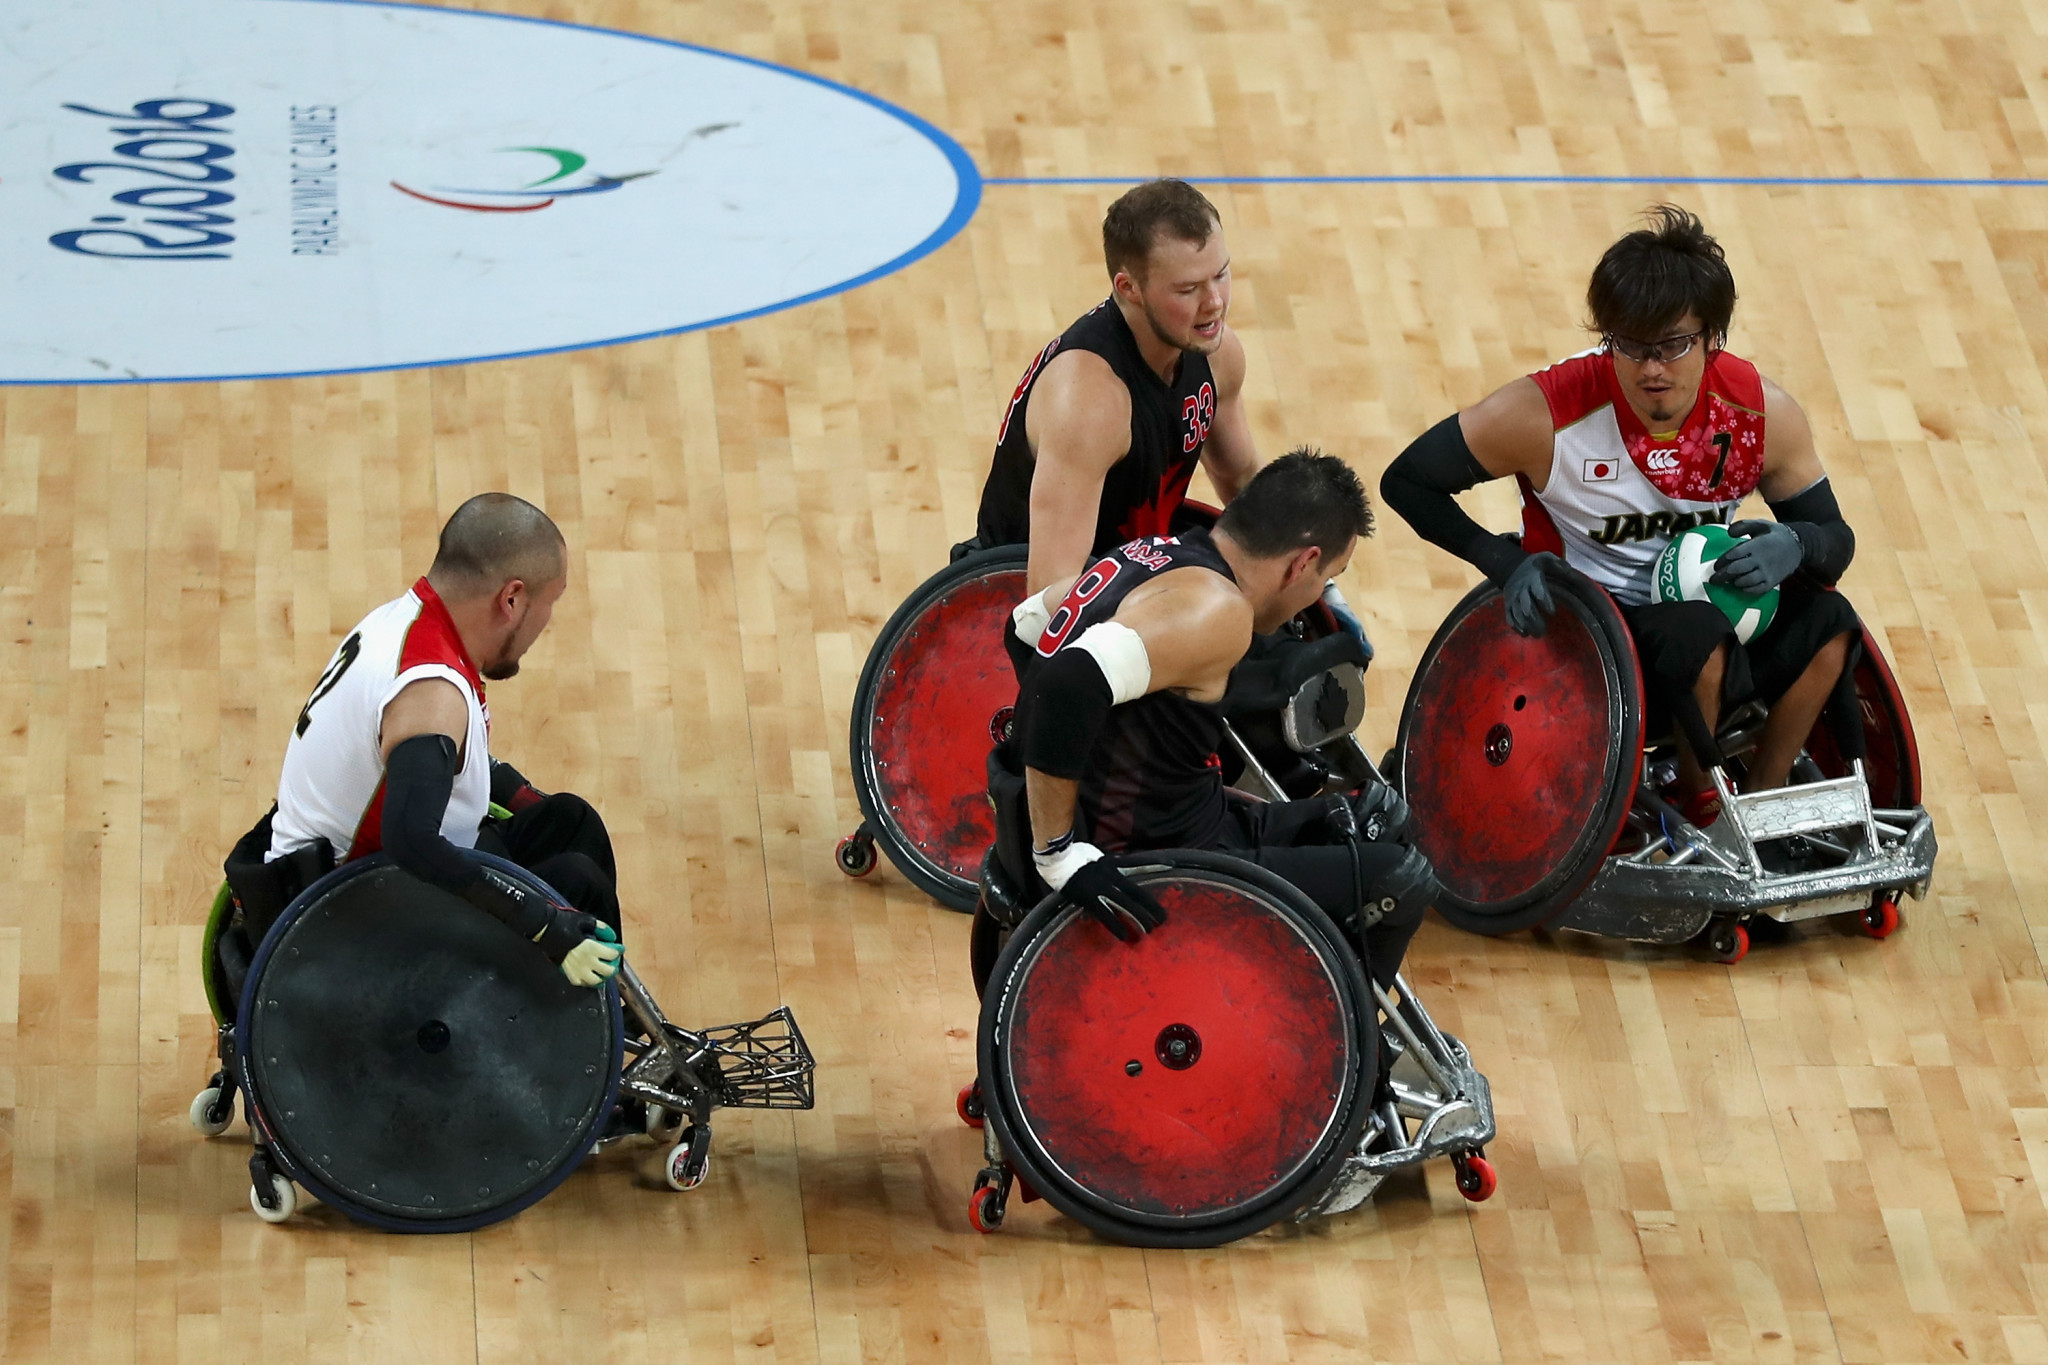 Wheelchair rugby will now look forward to the Tokyo 2020 Paralympic Games  ©Getty Images